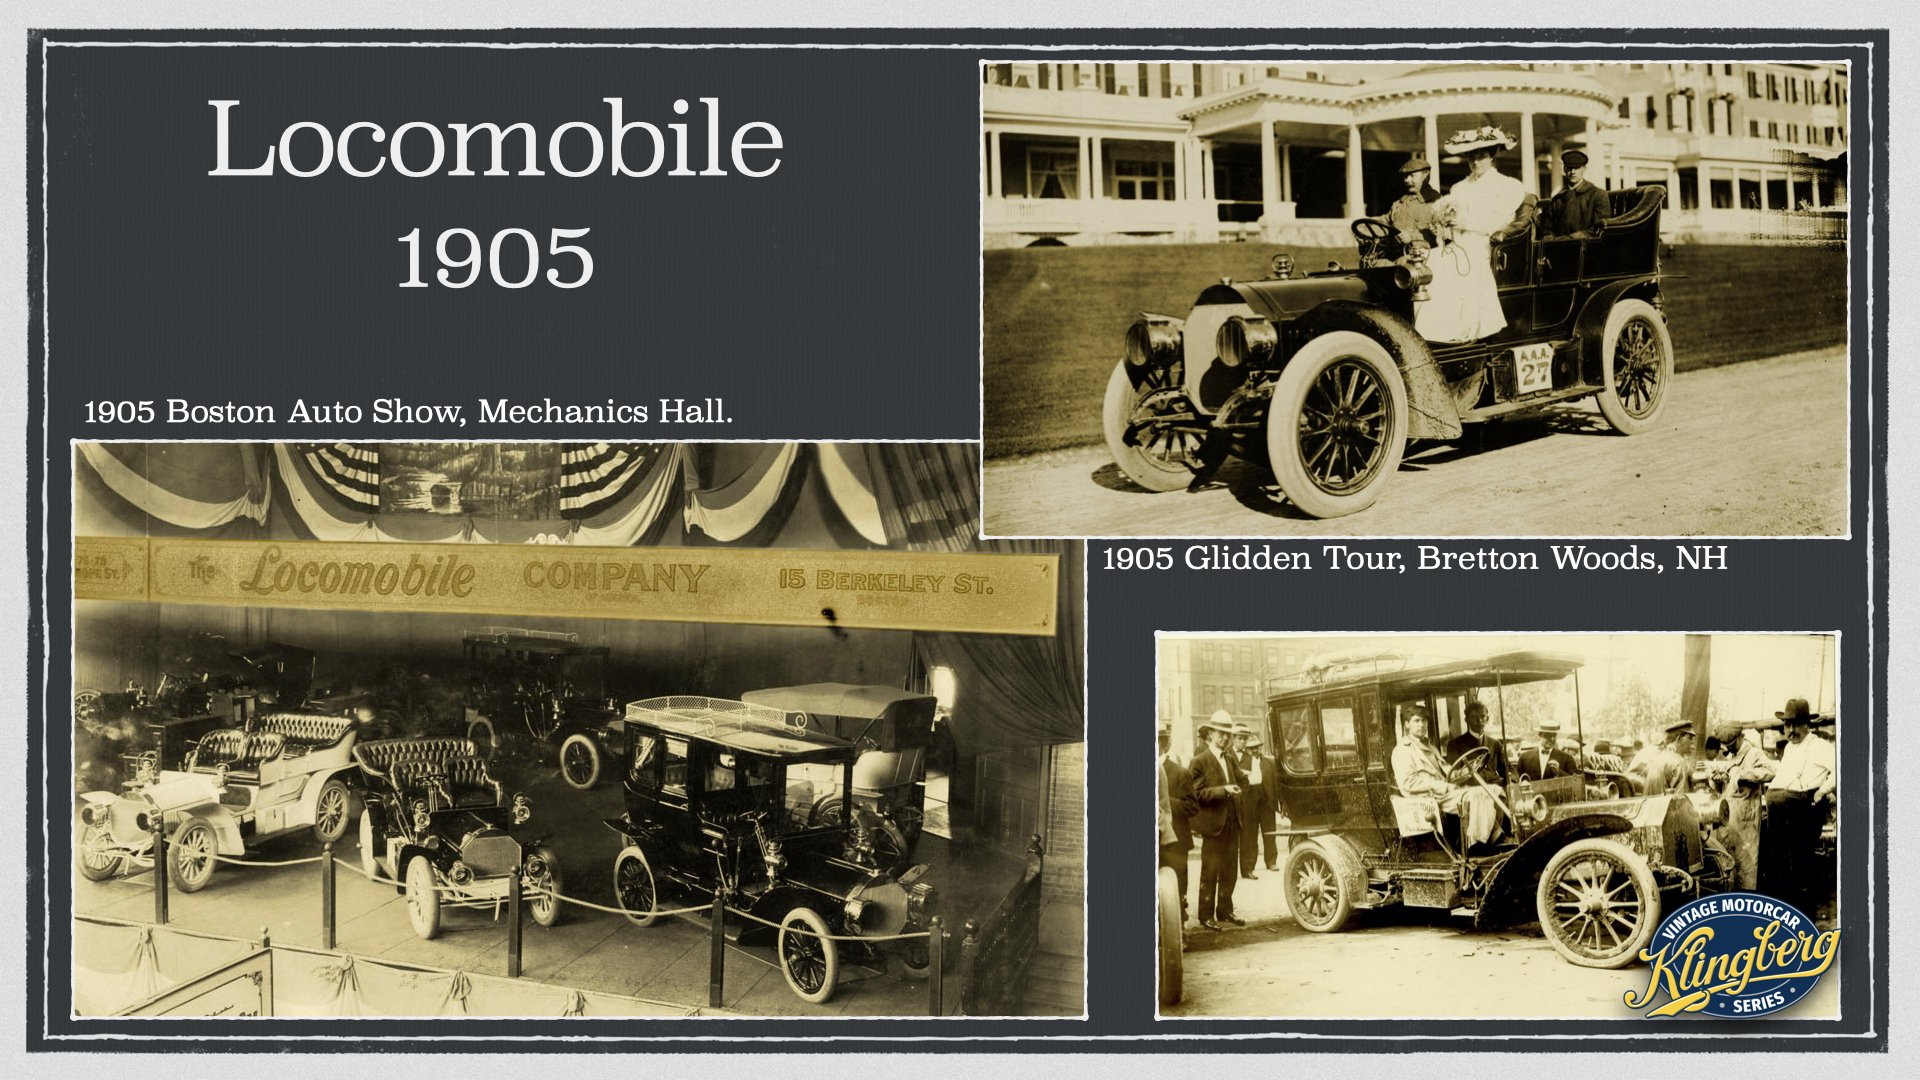 Locomobile 1